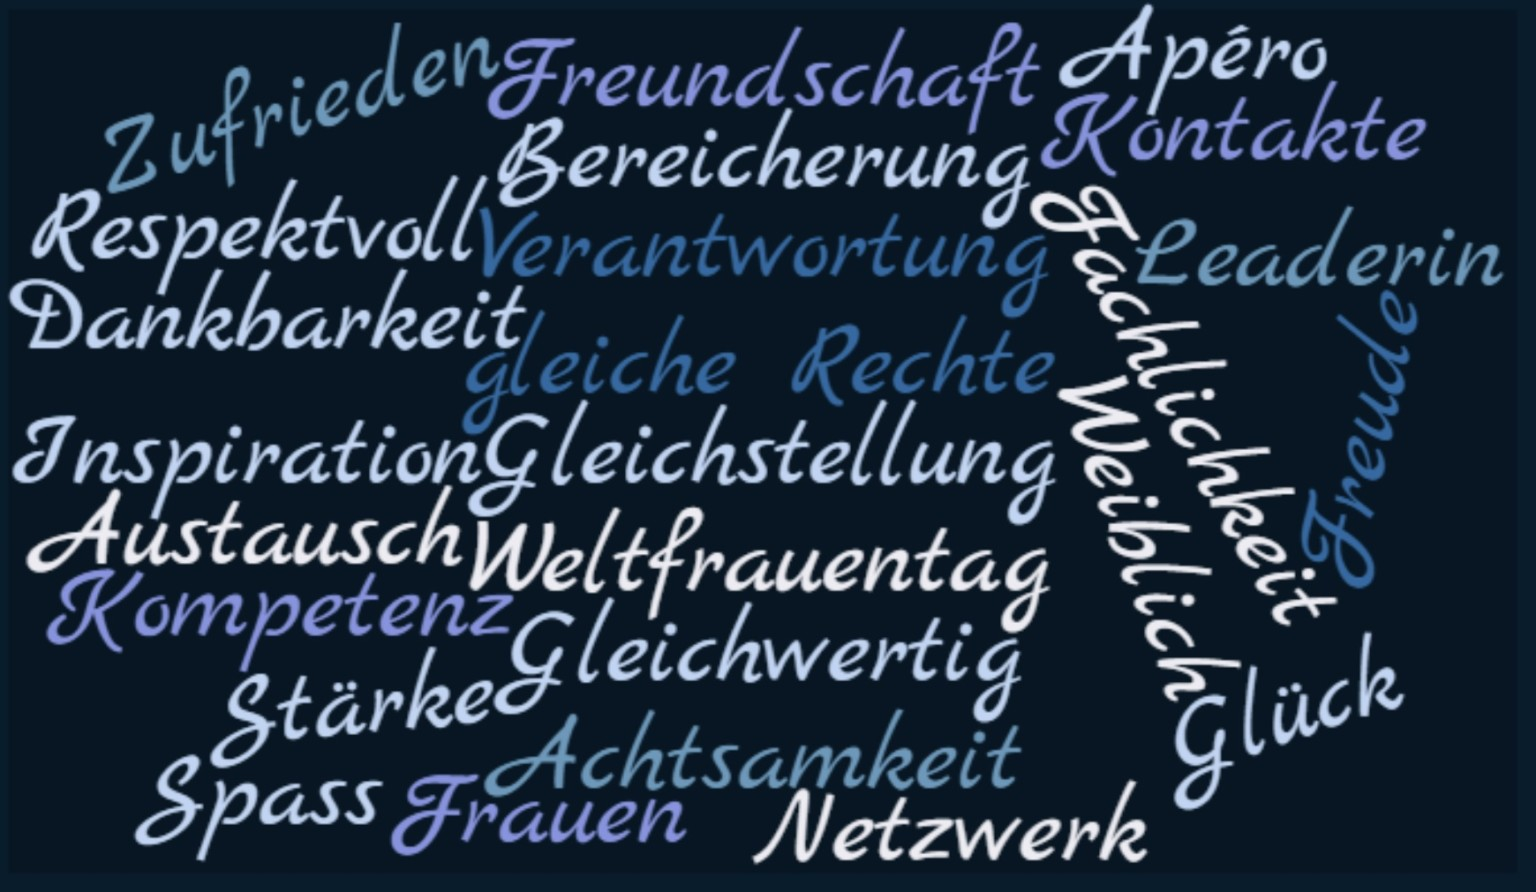 Wordle Weltfrauentag